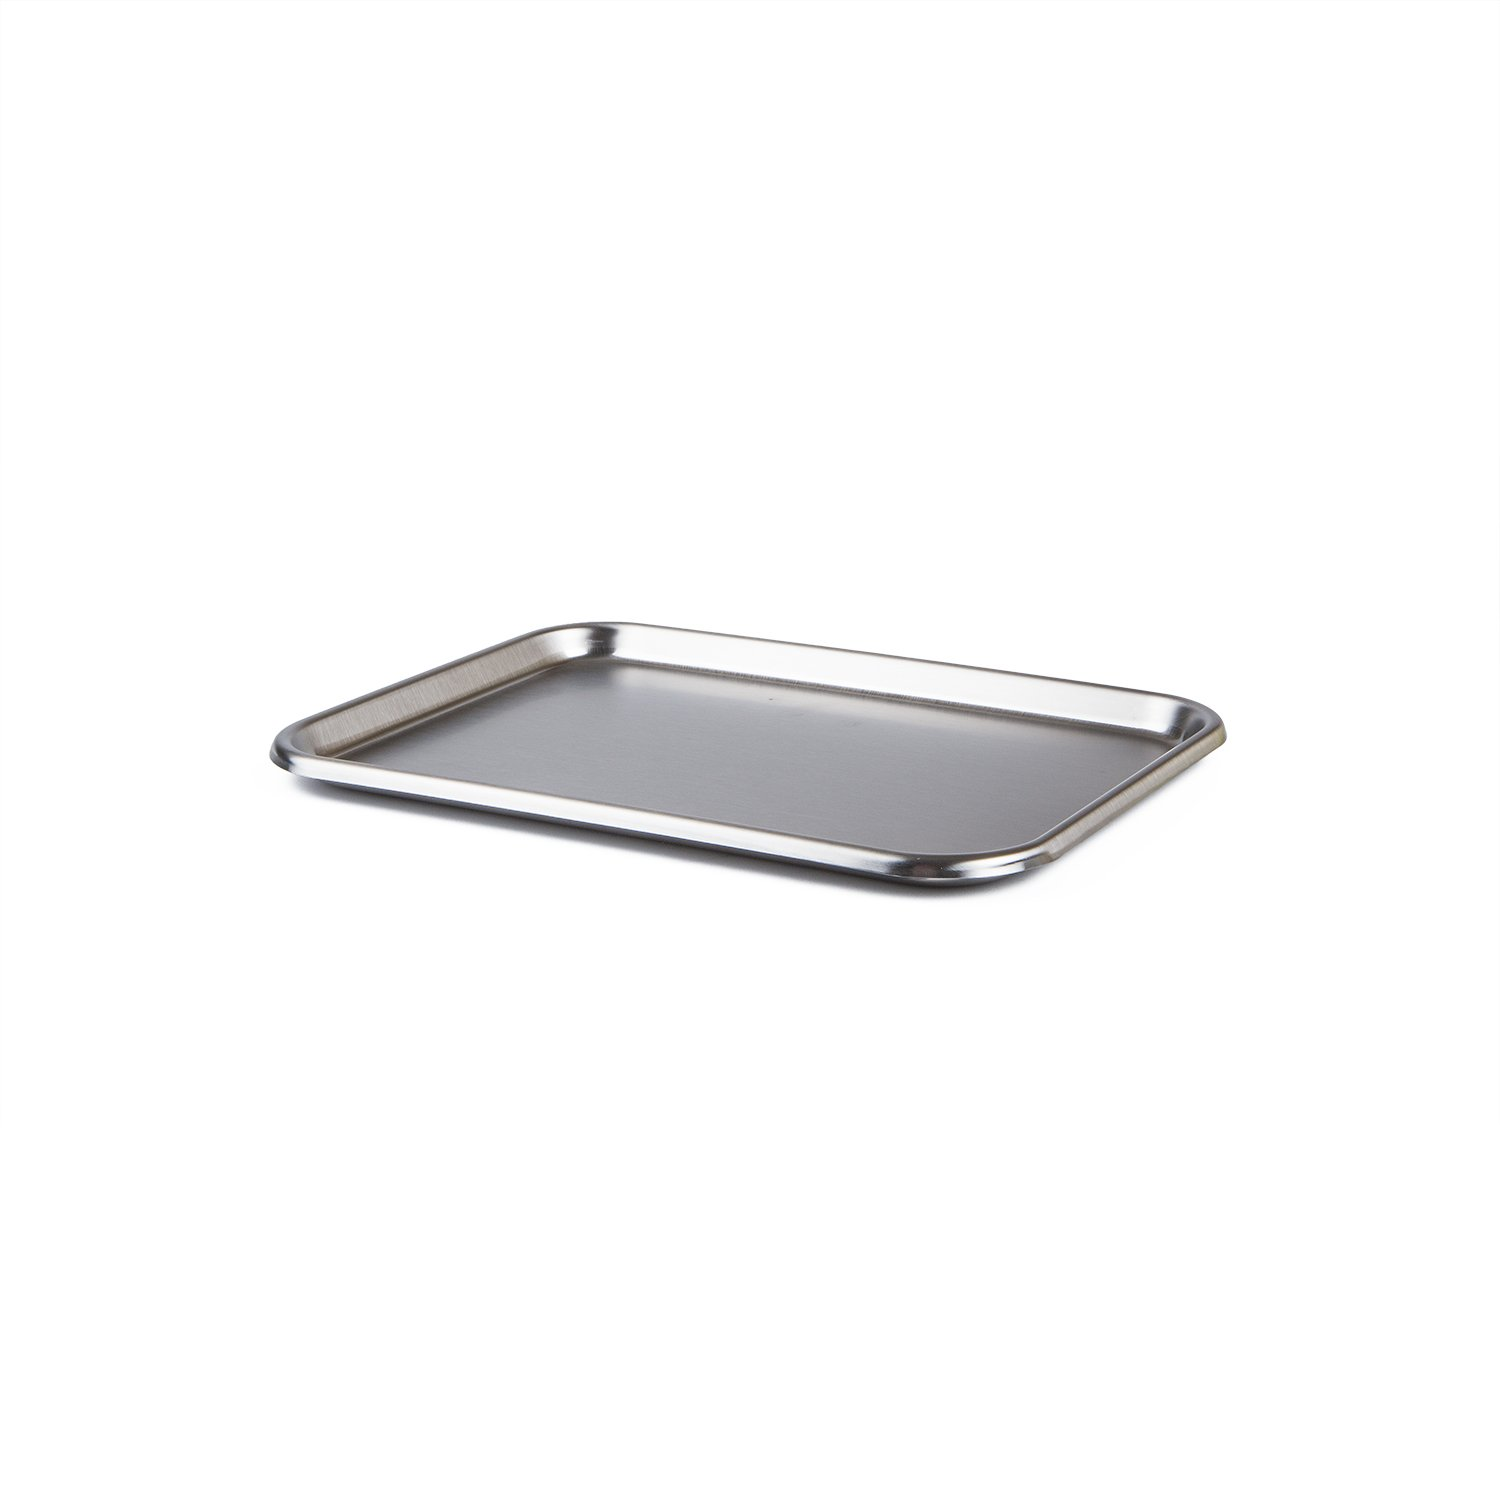 Medegen Medical Products 80130 Instrument Tray, Mayo-Style, Regular Size